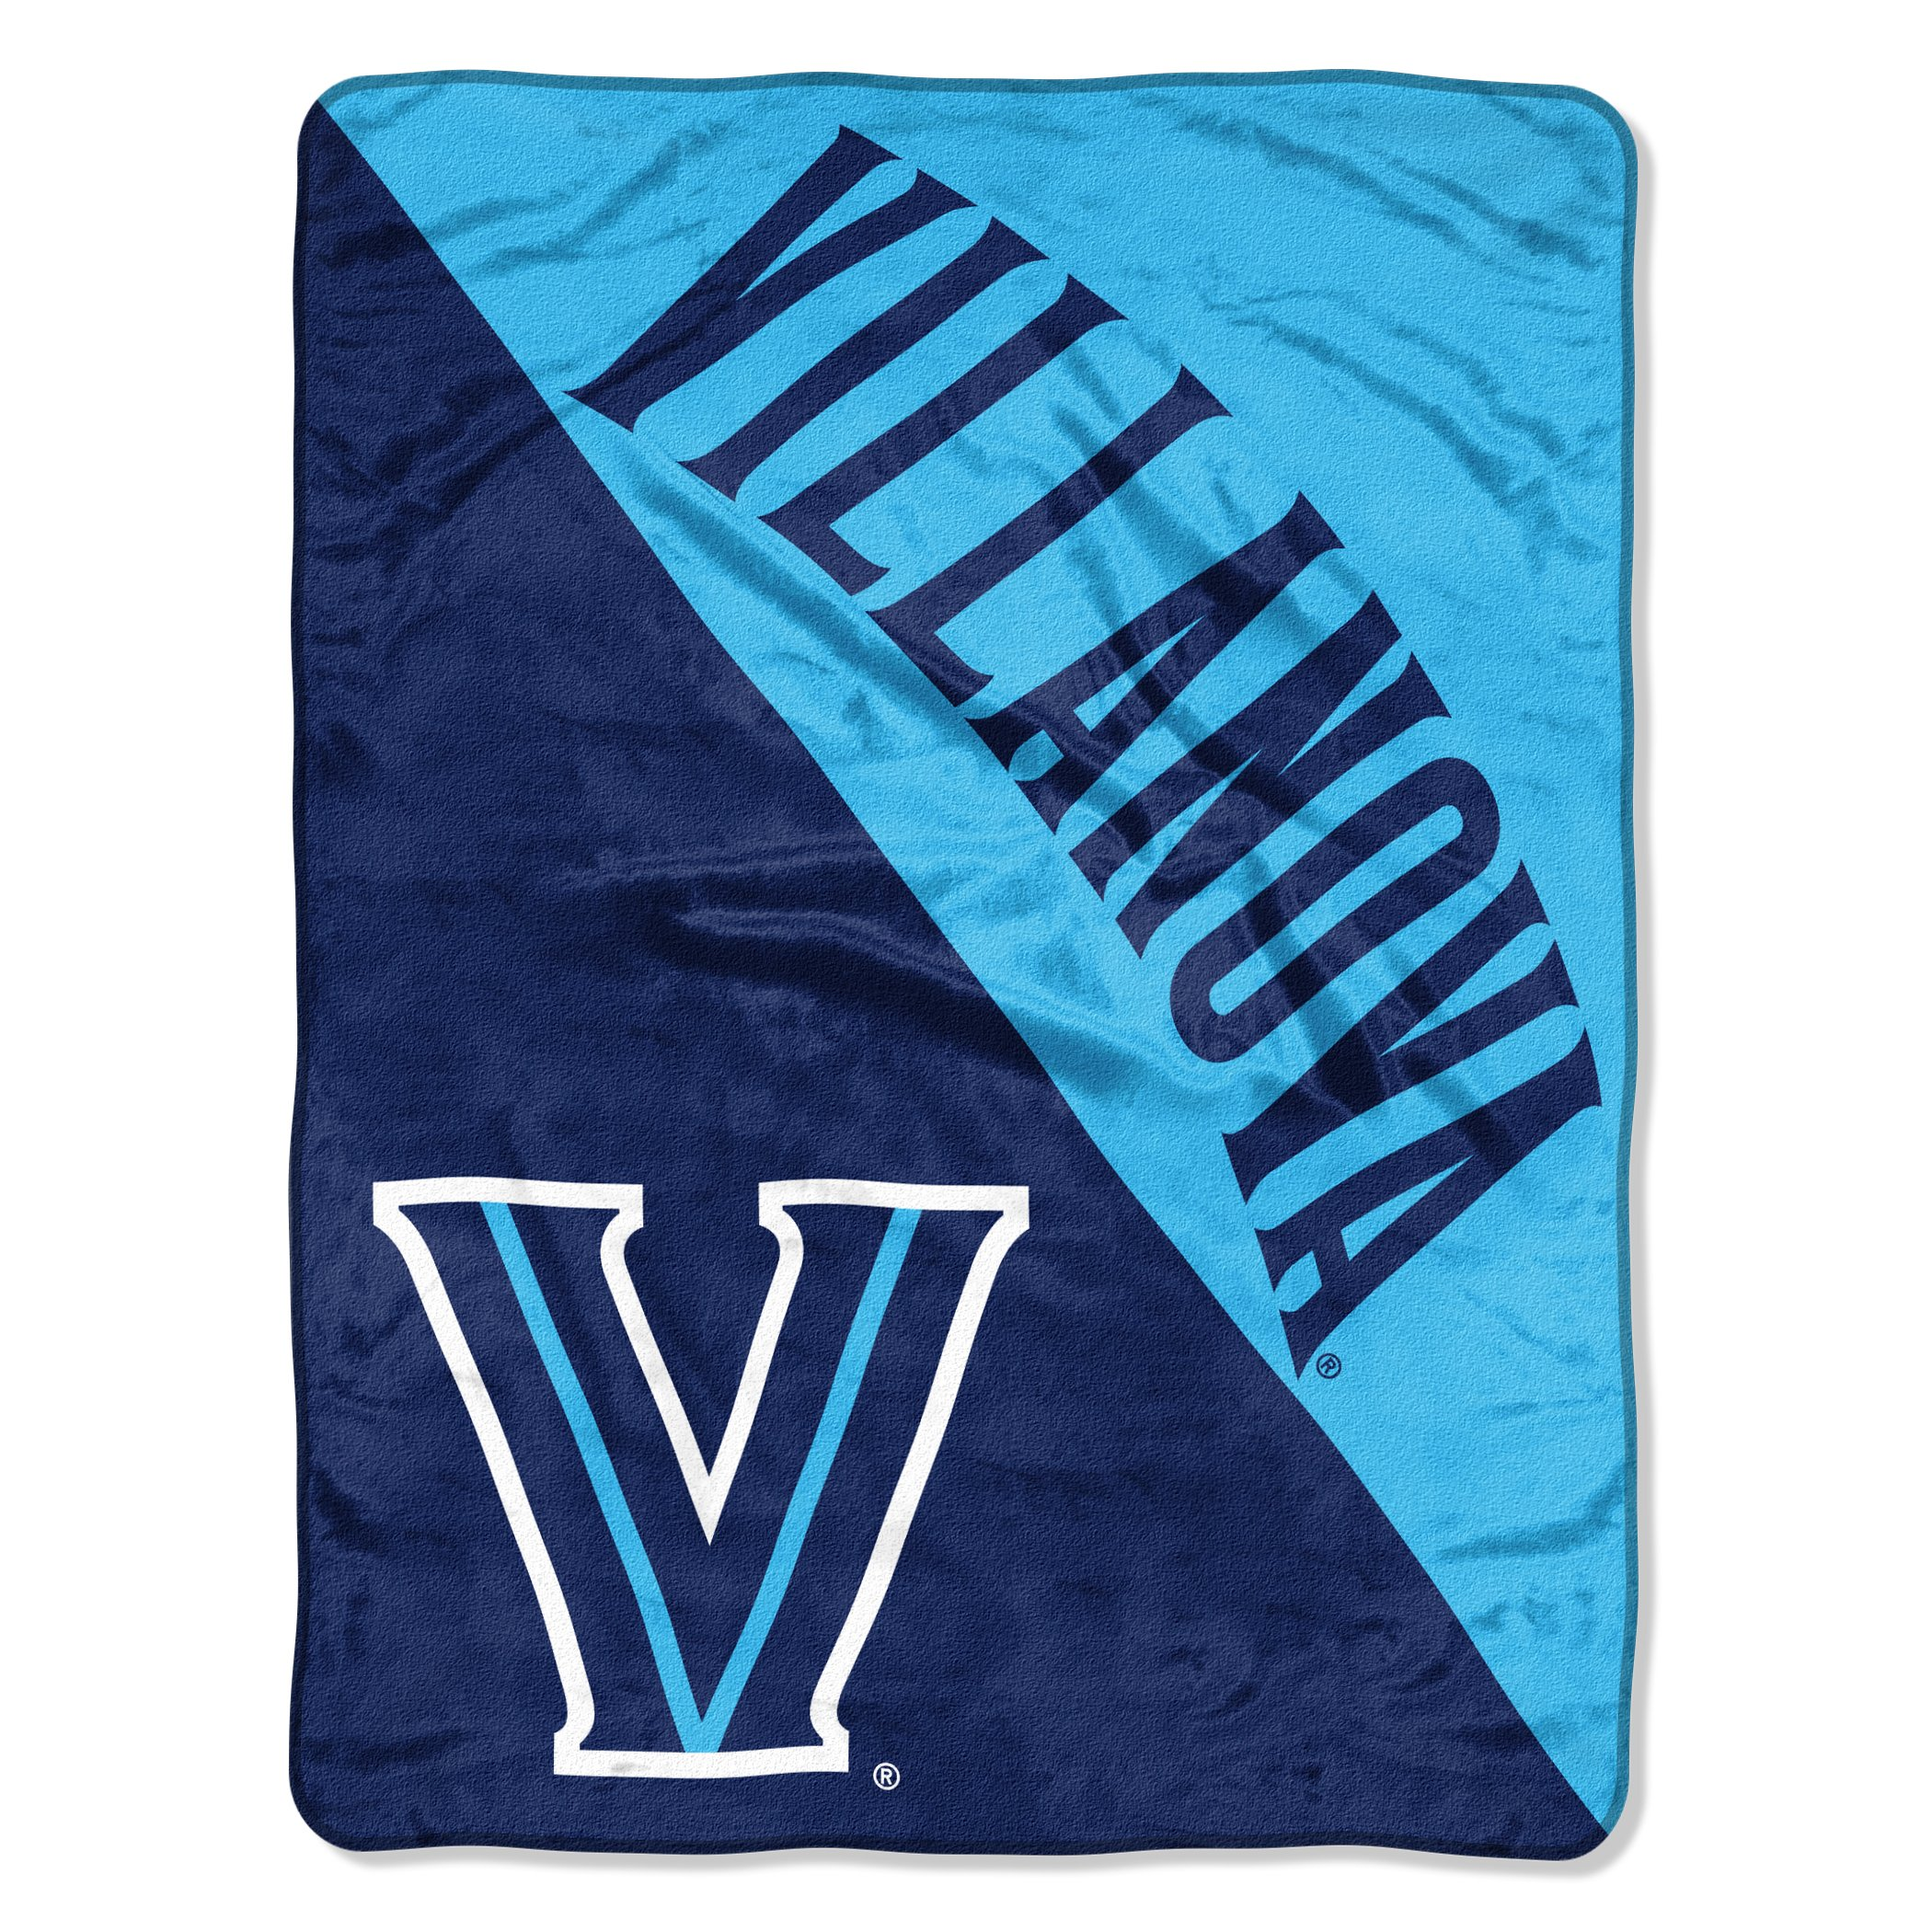 The Northwest Company Officially Licensed NCAA Villanova Wildcats Halftone Micro Raschel Throw Blanket, 46'' x 60'', Multi Color by The Northwest Company